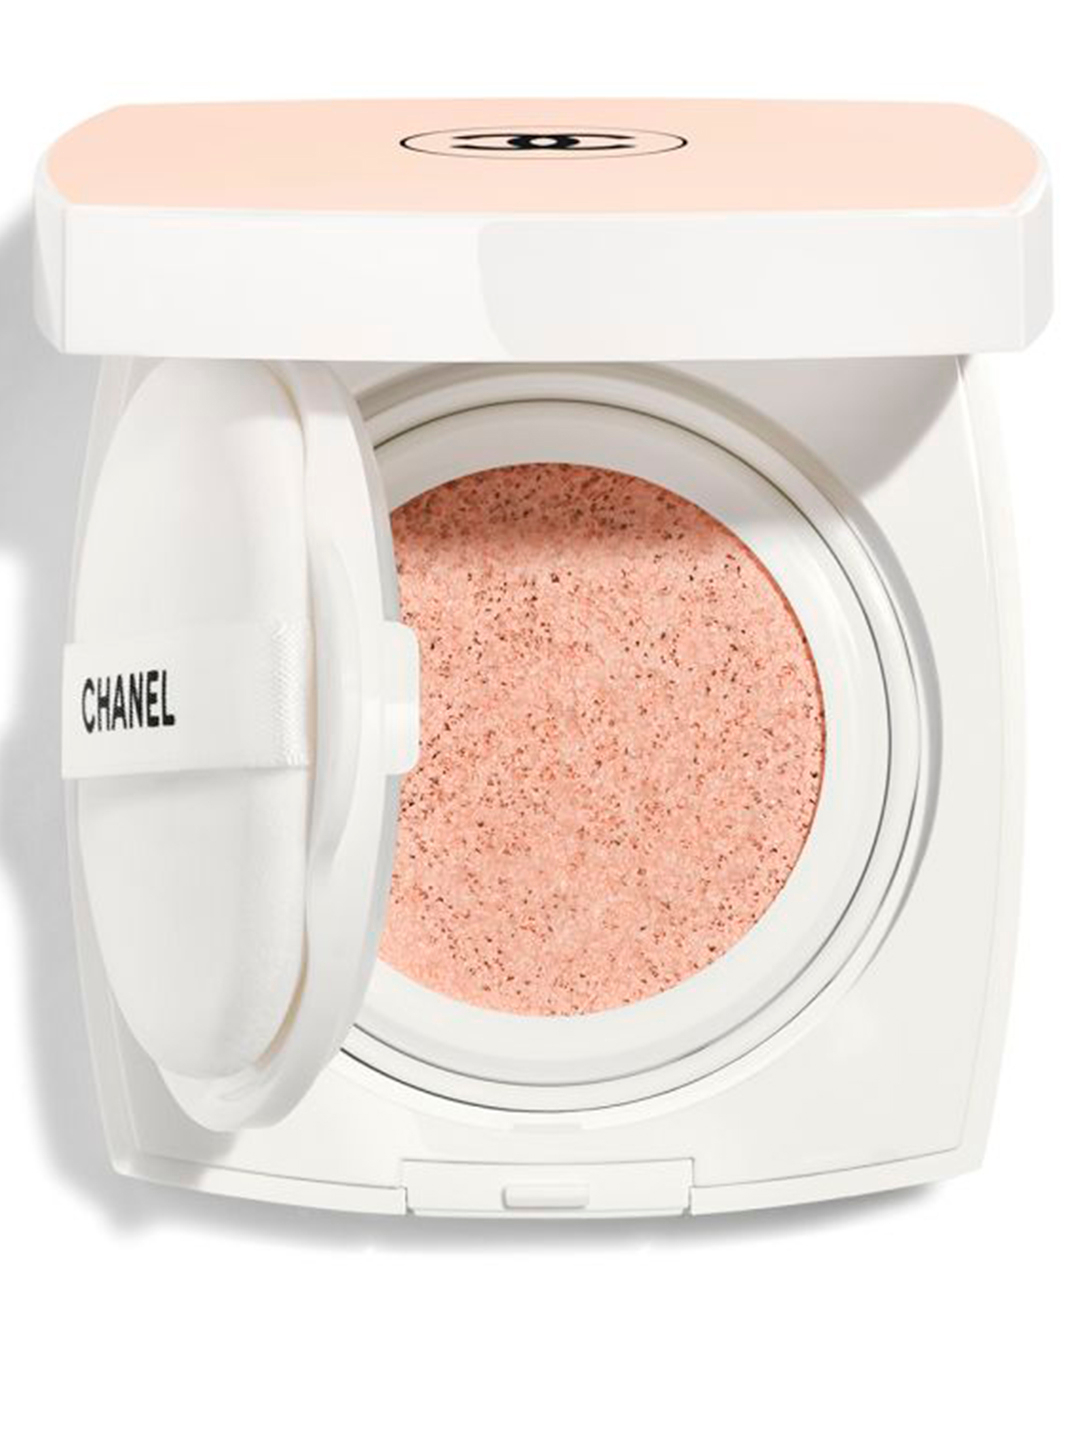 CHANEL Embellisseur de teint cushion multi-usage CHANEL Incolore